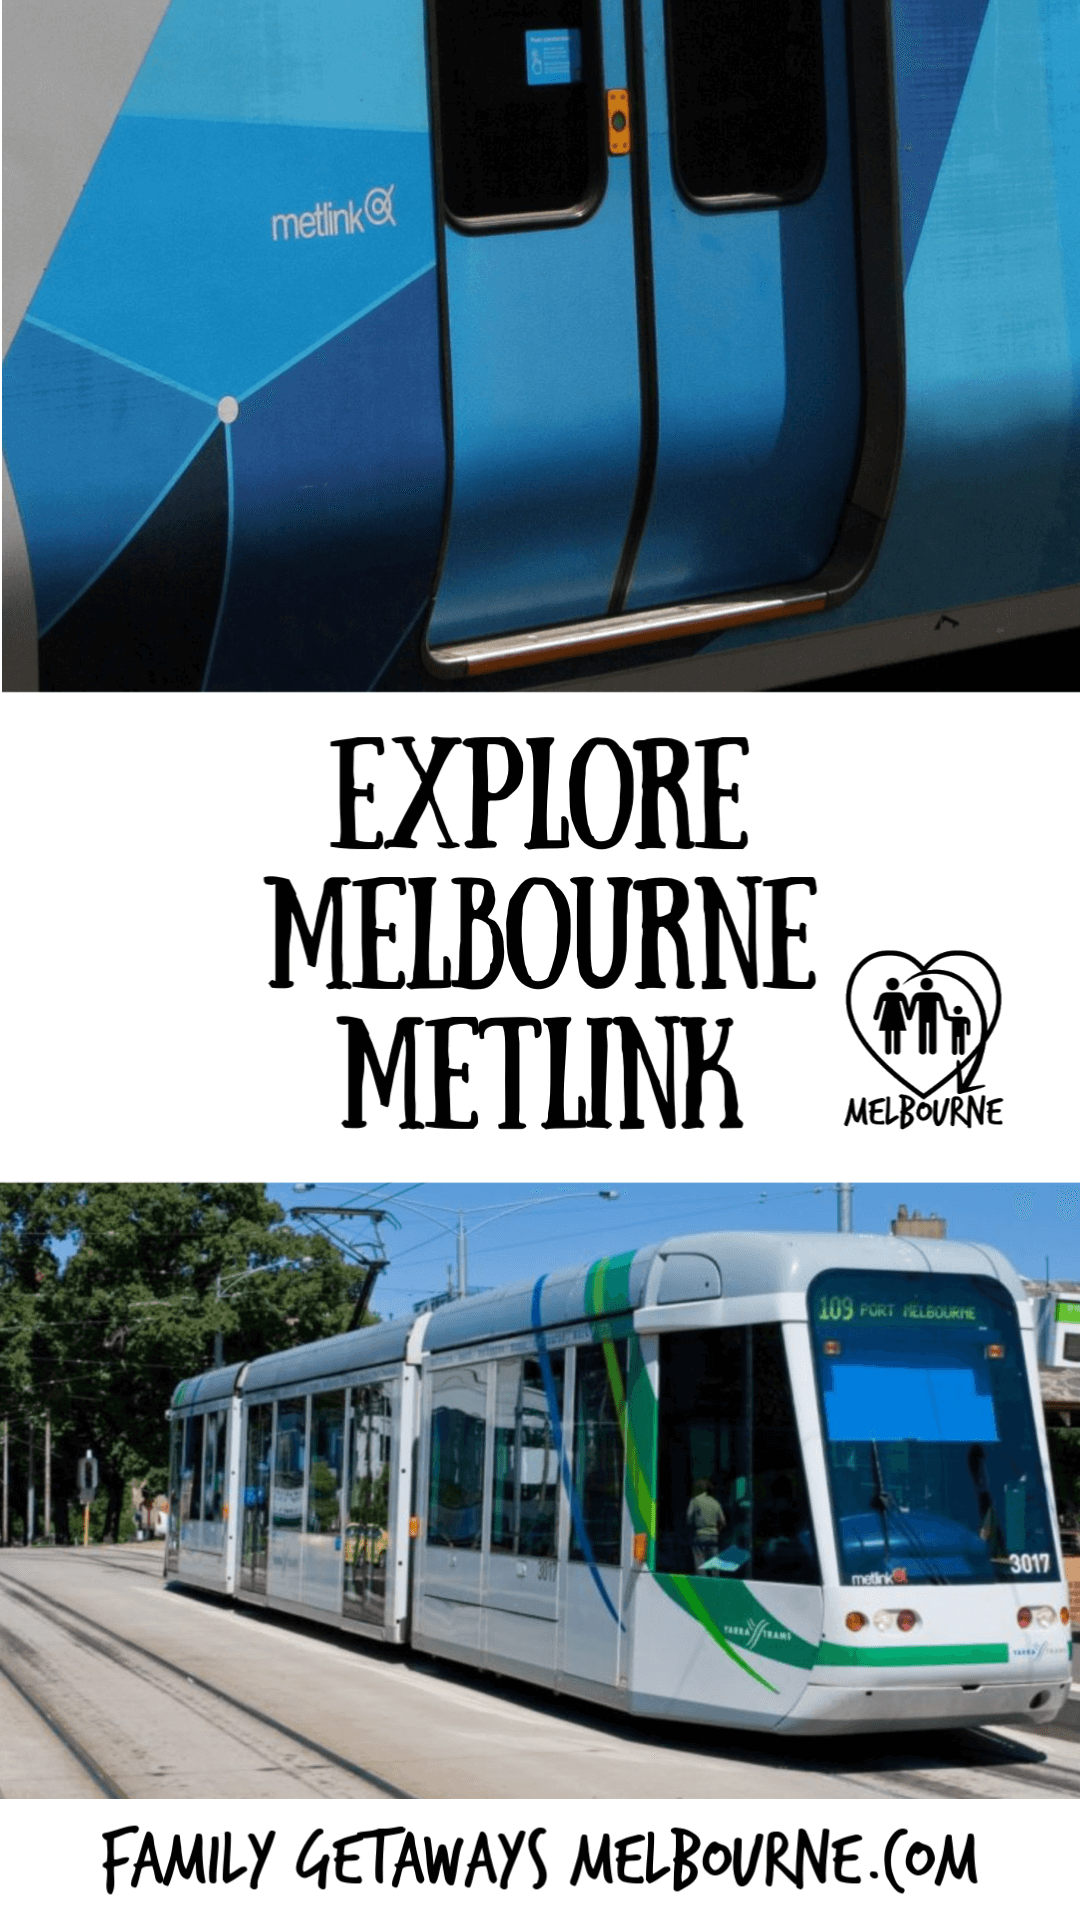 image to pin to Pinterest for information on Melbourne's metlink